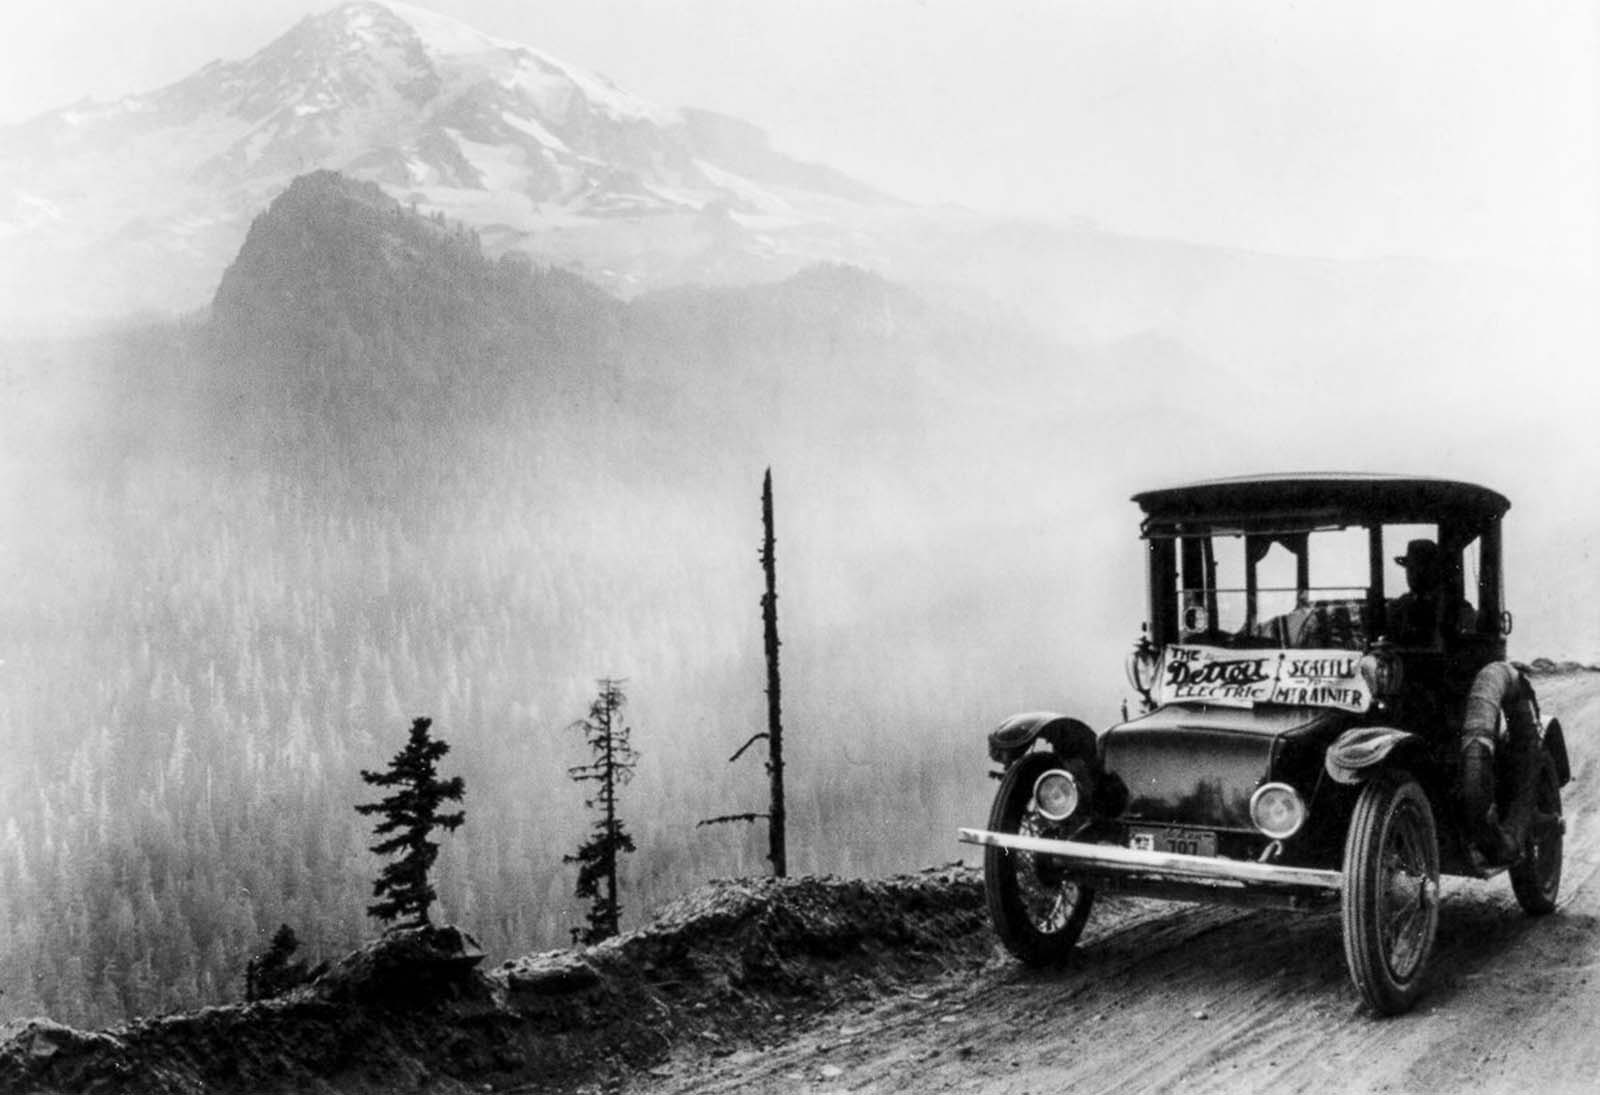 A Detroit Electric car drives on a mountain road between Seattle and Mount Rainier, Washington. 1920.